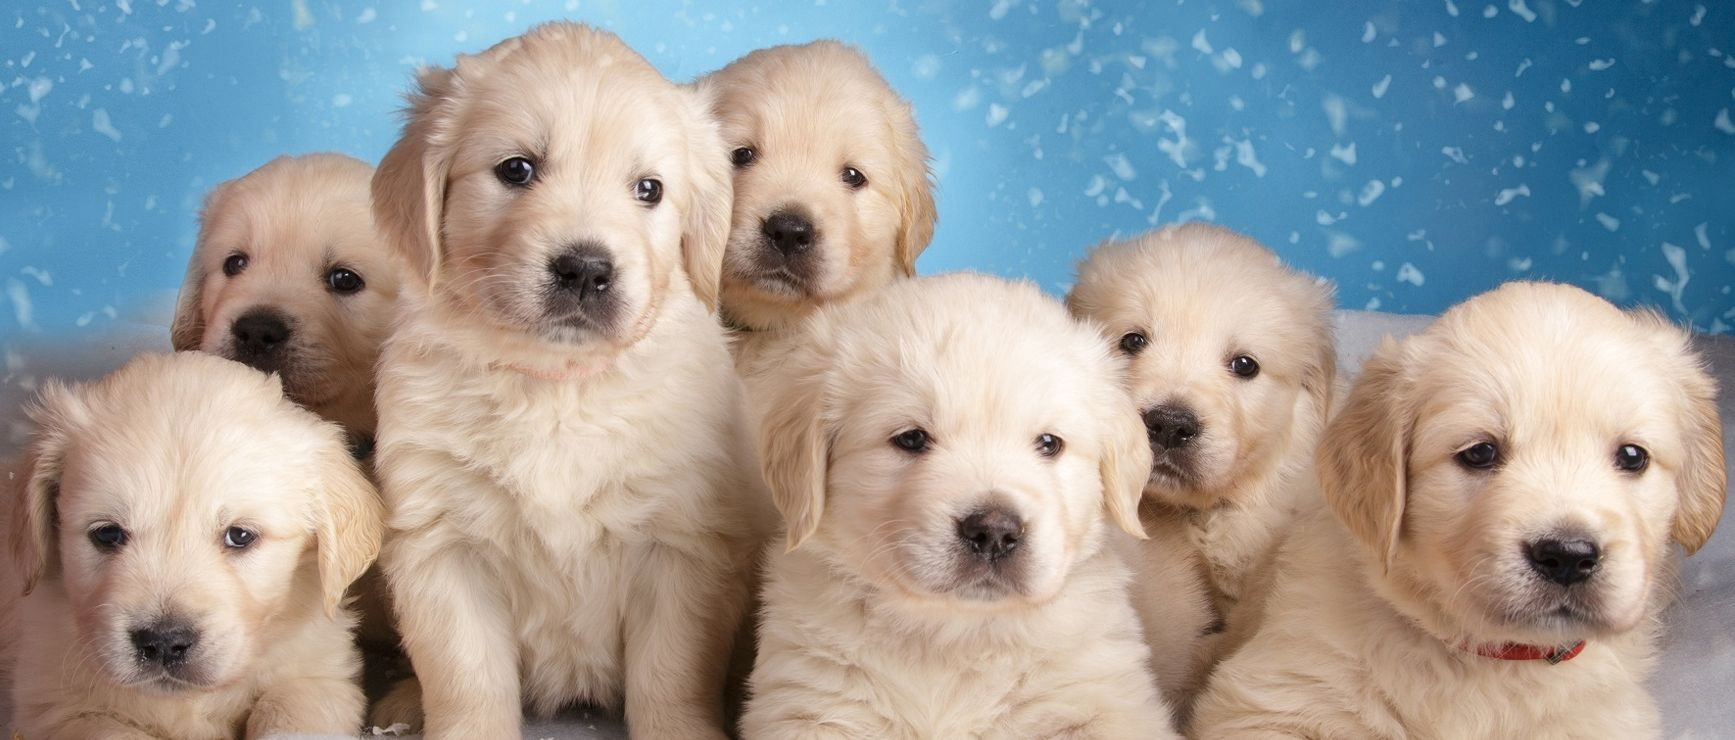 Get healthy and ethically bred Golden Retriever puppies